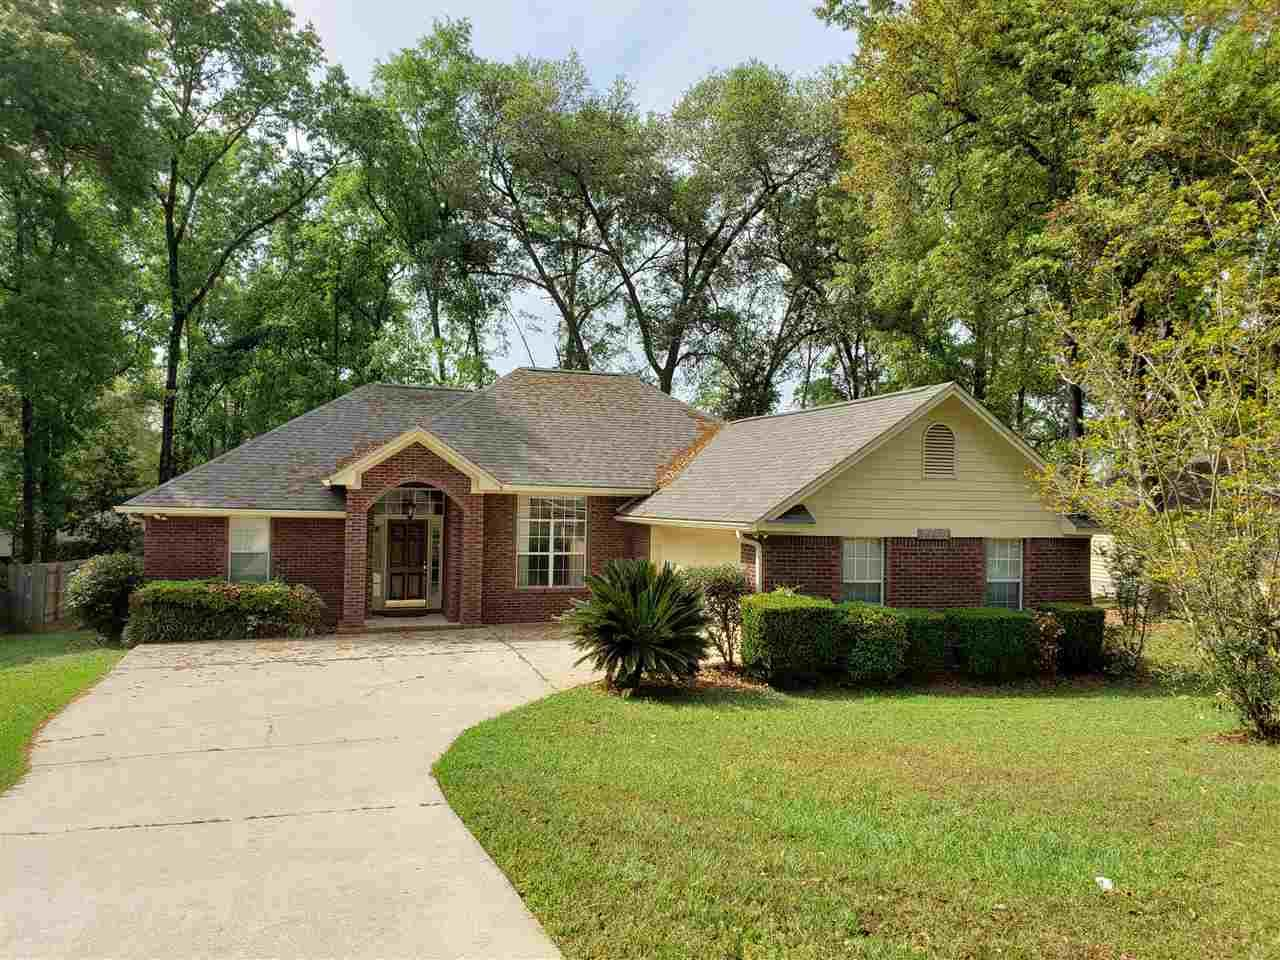 Photo of 5745 Countryside Drive, TALLAHASSEE, FL 32317 (MLS # 317401)